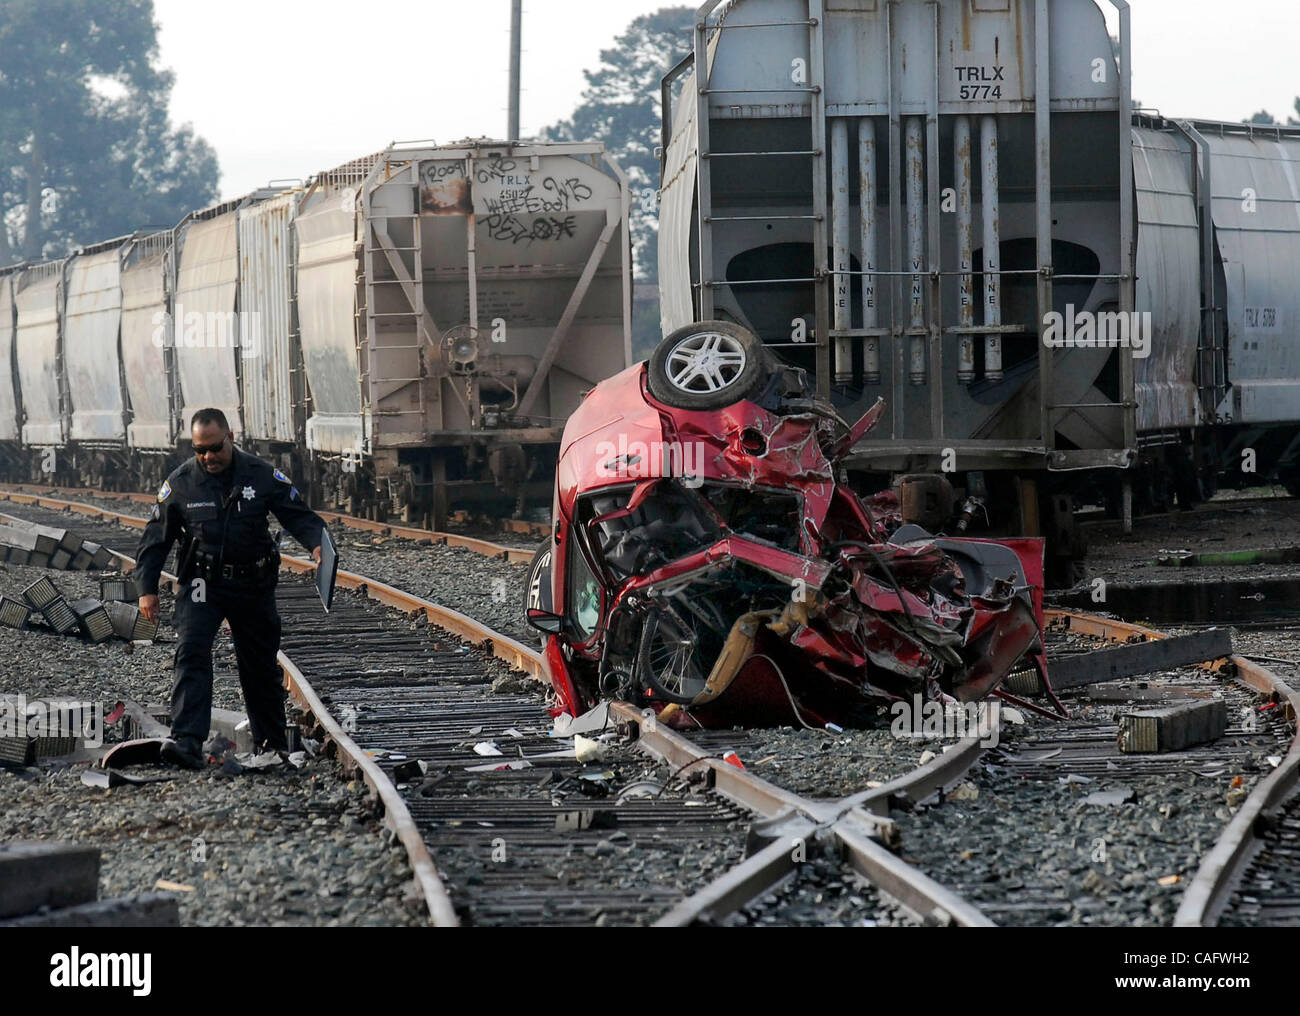 Person Killed Hit By Train High Resolution Stock Photography And